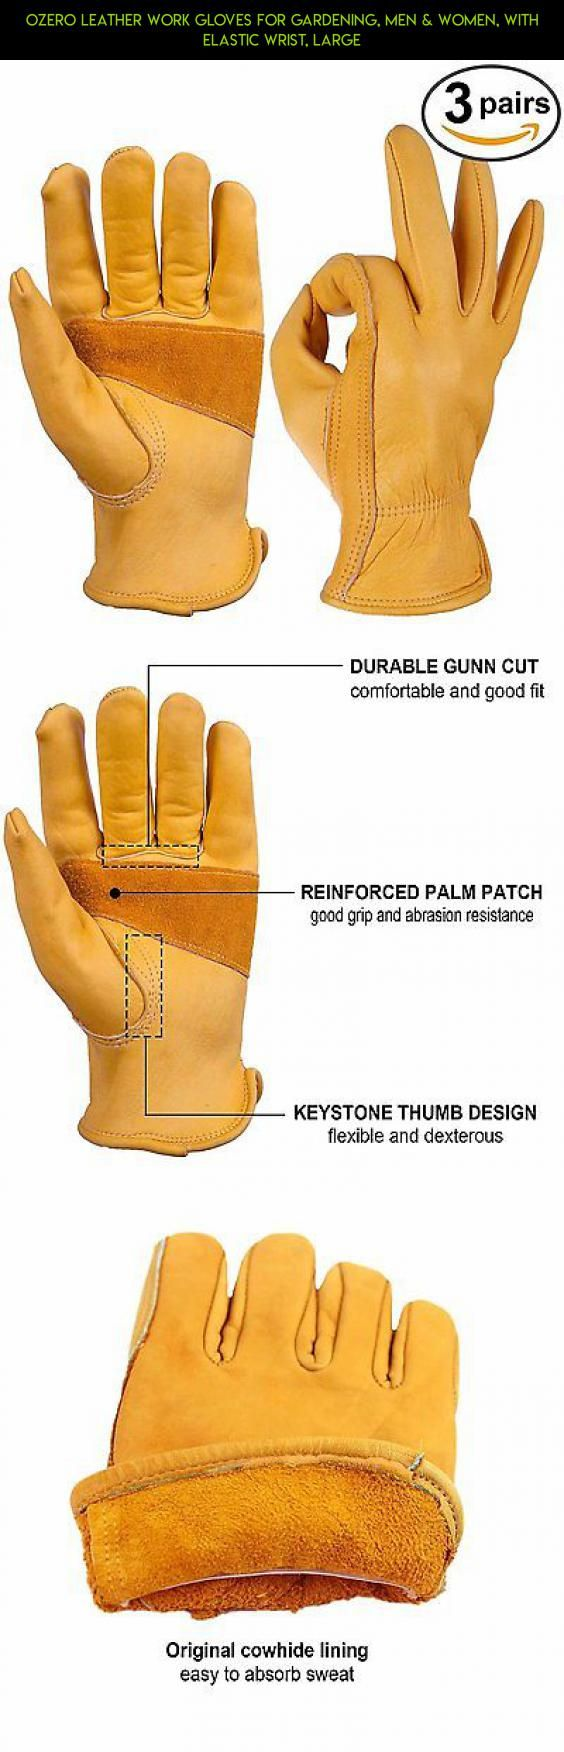 Mens leather kid gloves - Ozero Leather Work Gloves For Gardening Men Women With Elastic Wrist Large